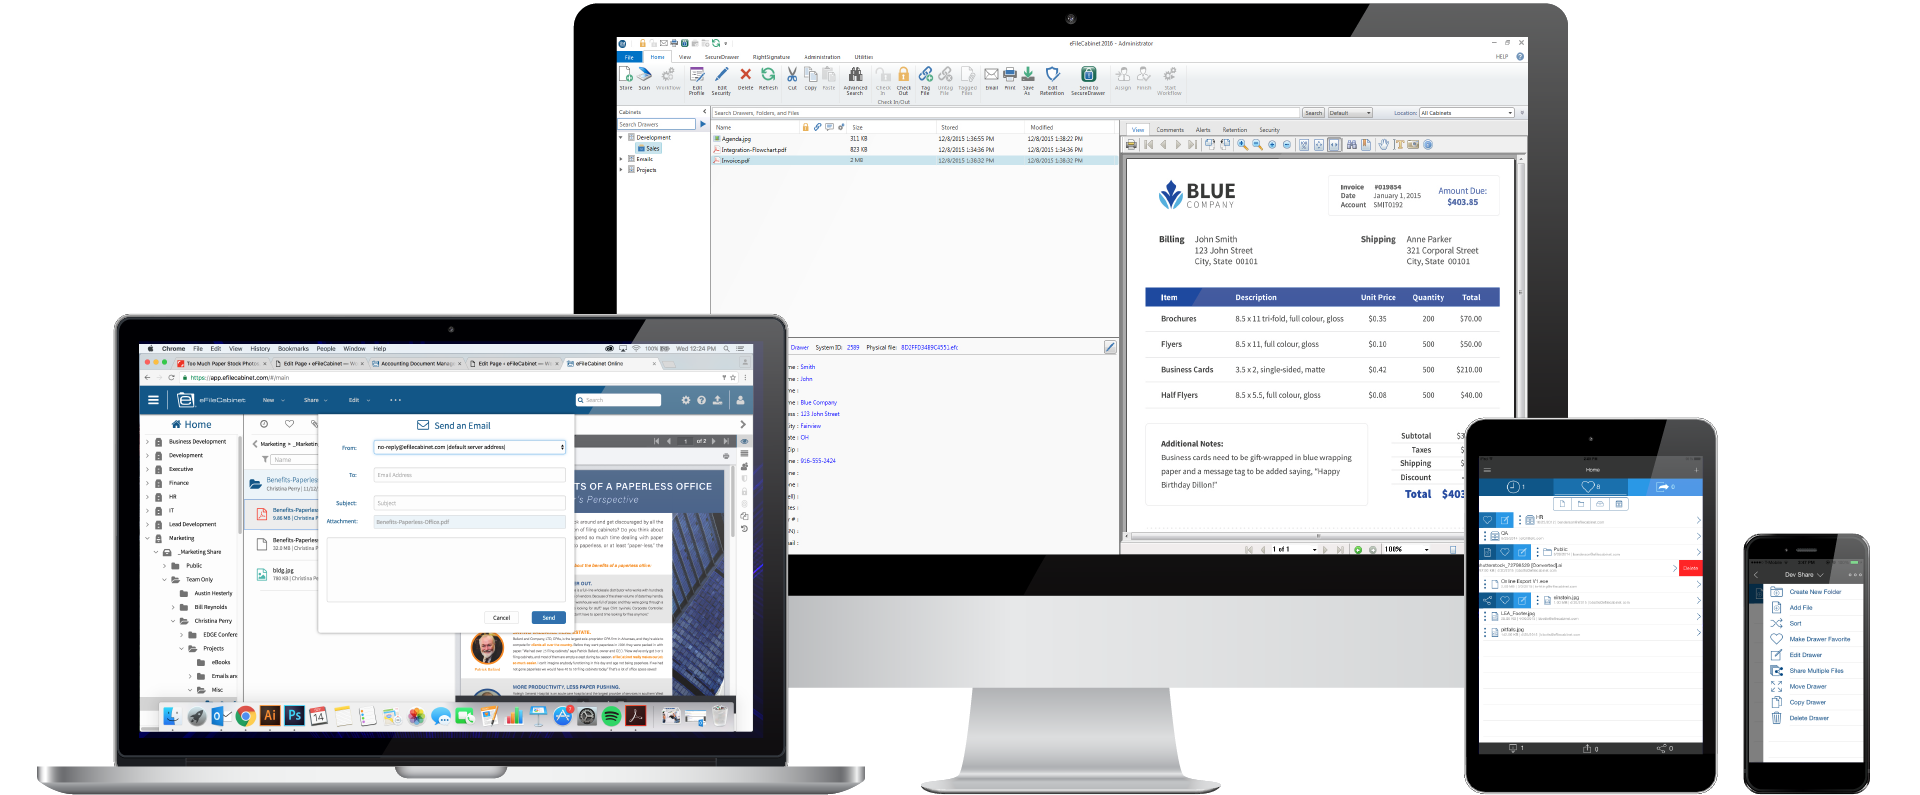 eFileCabinet Document Management Software Online is available on all devices